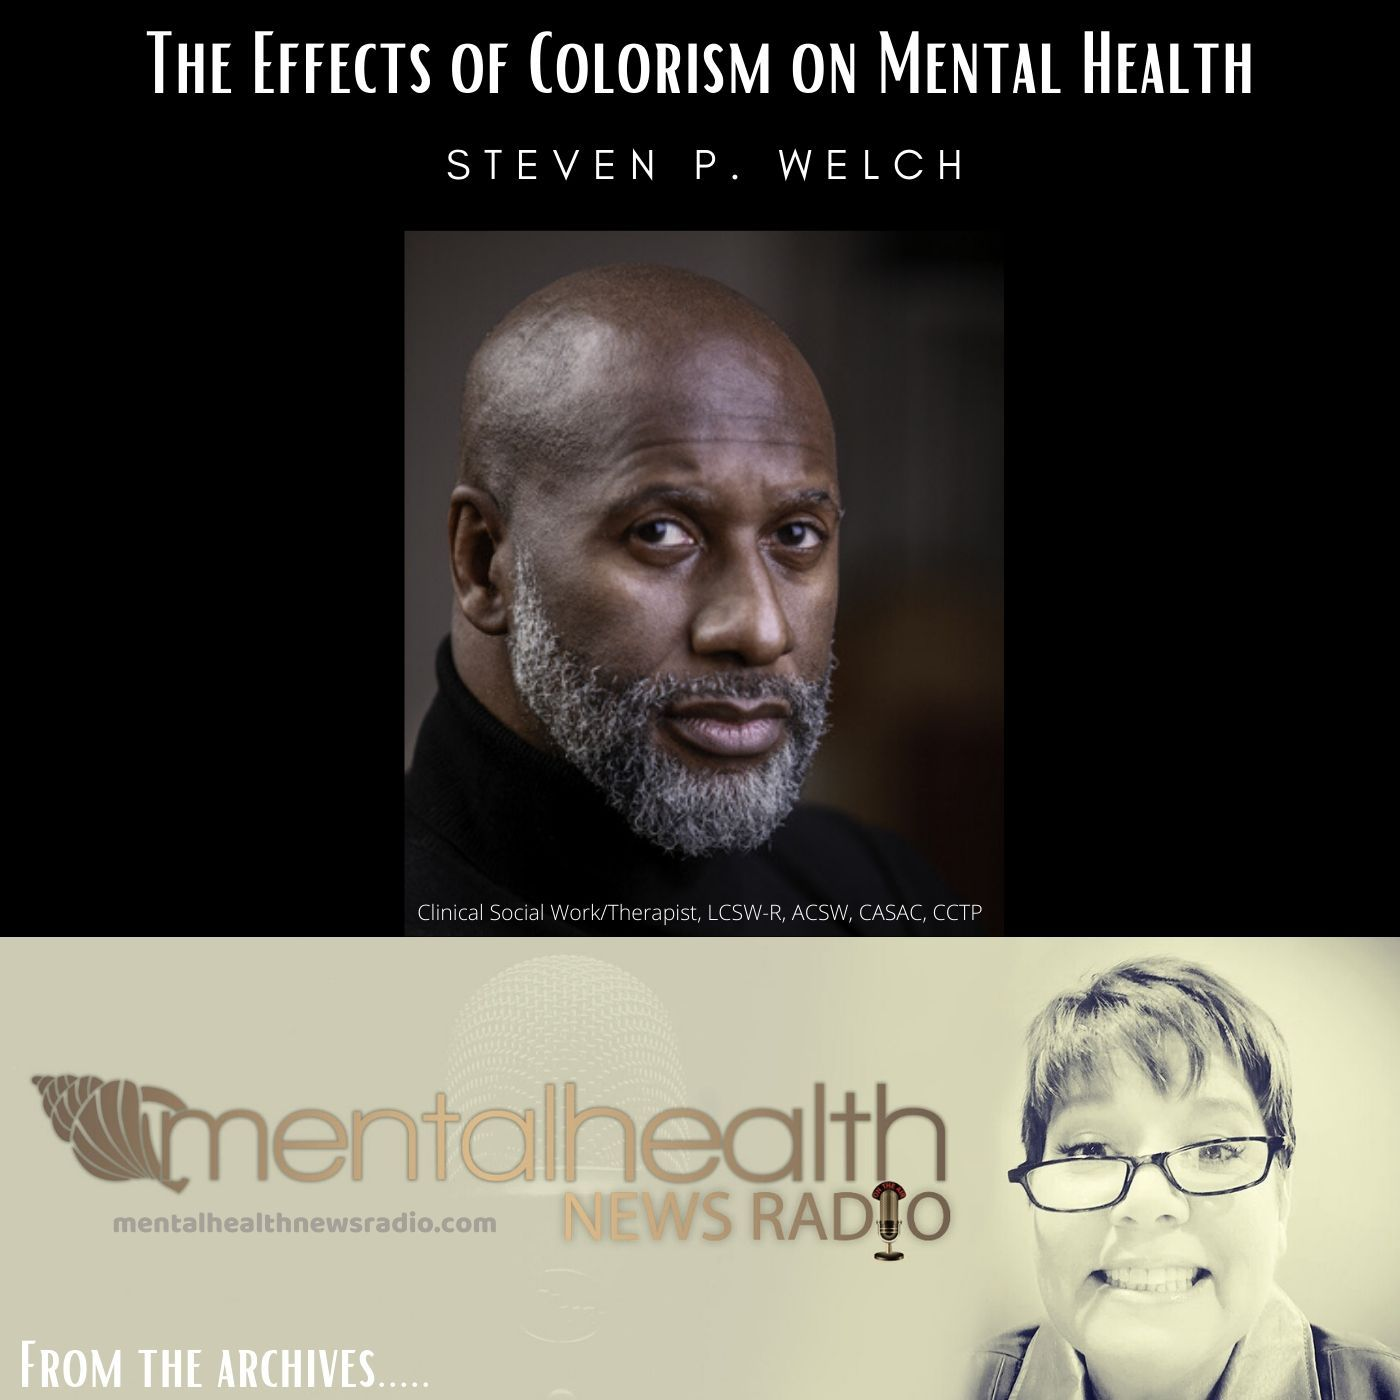 Mental Health News Radio - The Effects of Colorism on Mental Health